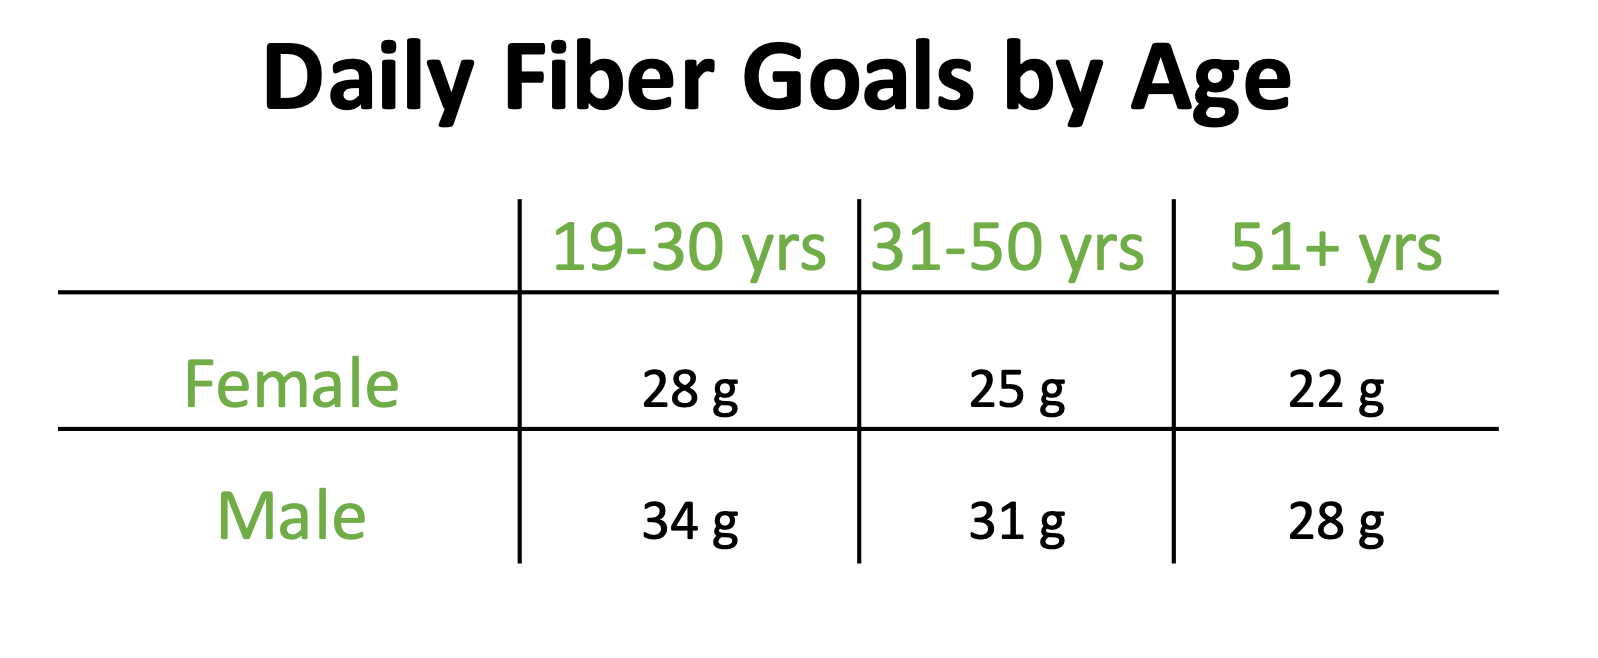 daily fiber goals by age